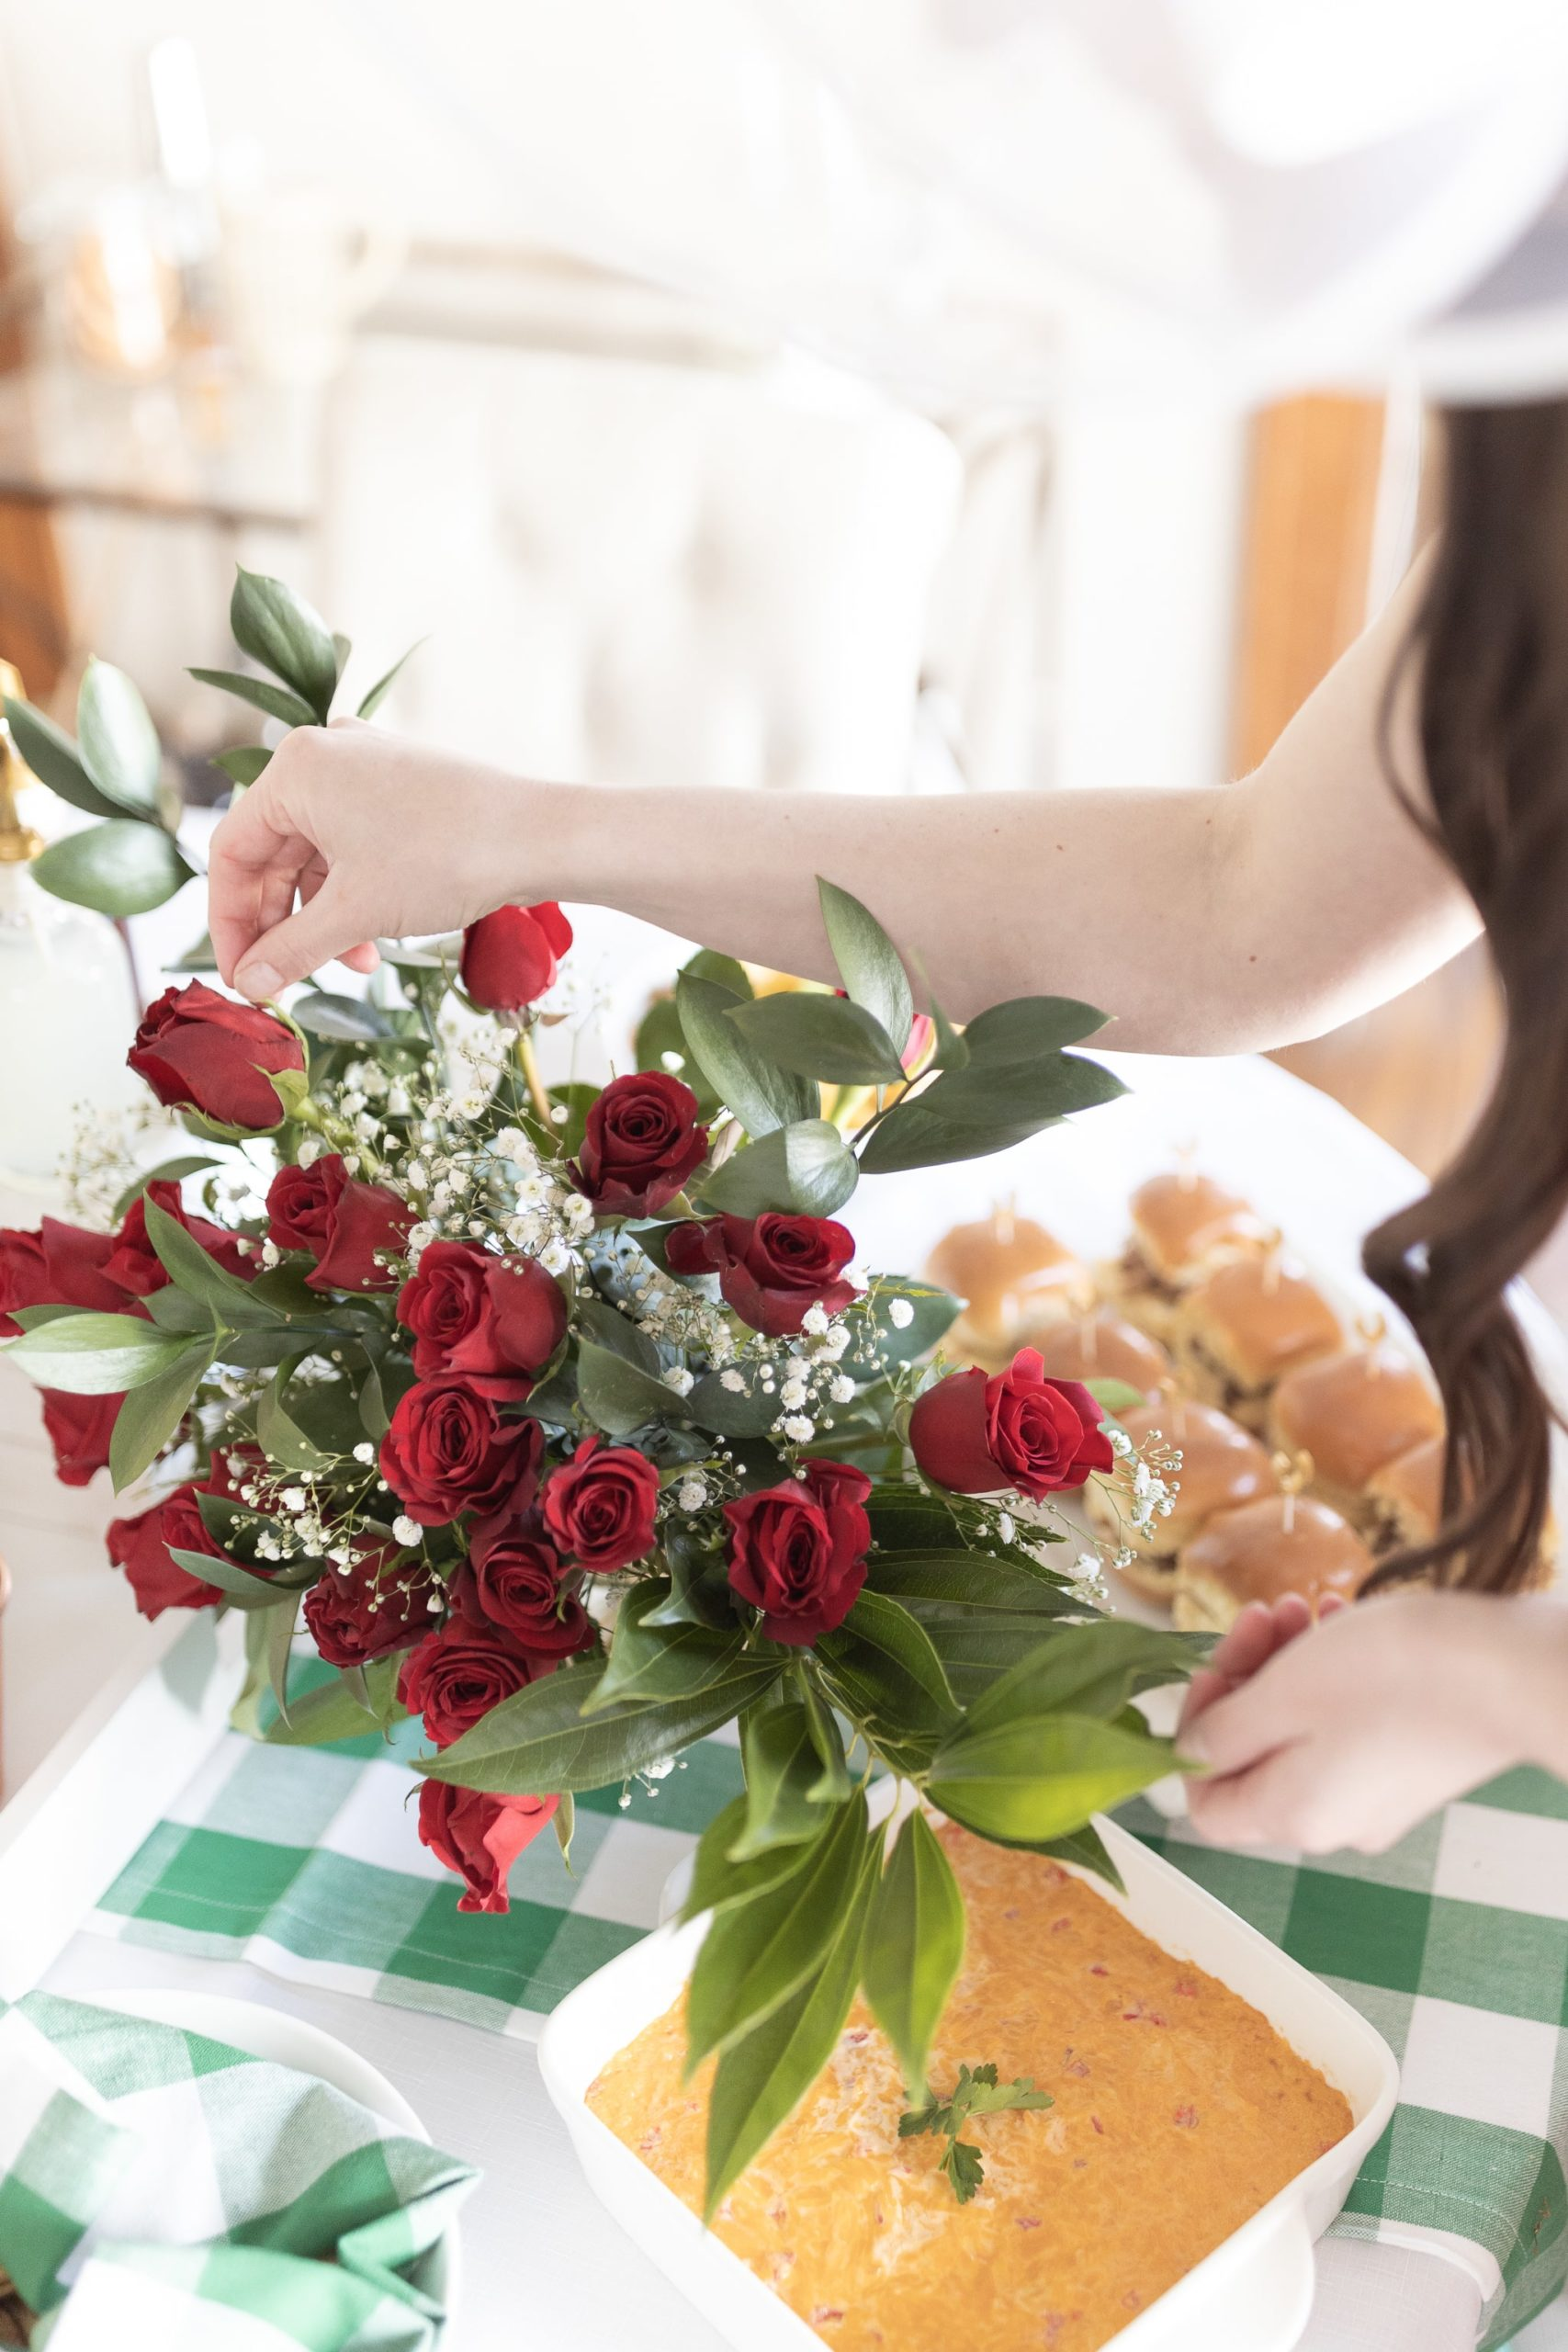 Red rose Kentucky Derby table decorations designed by blogger Stephanie Ziajka on Diary of a Debutante